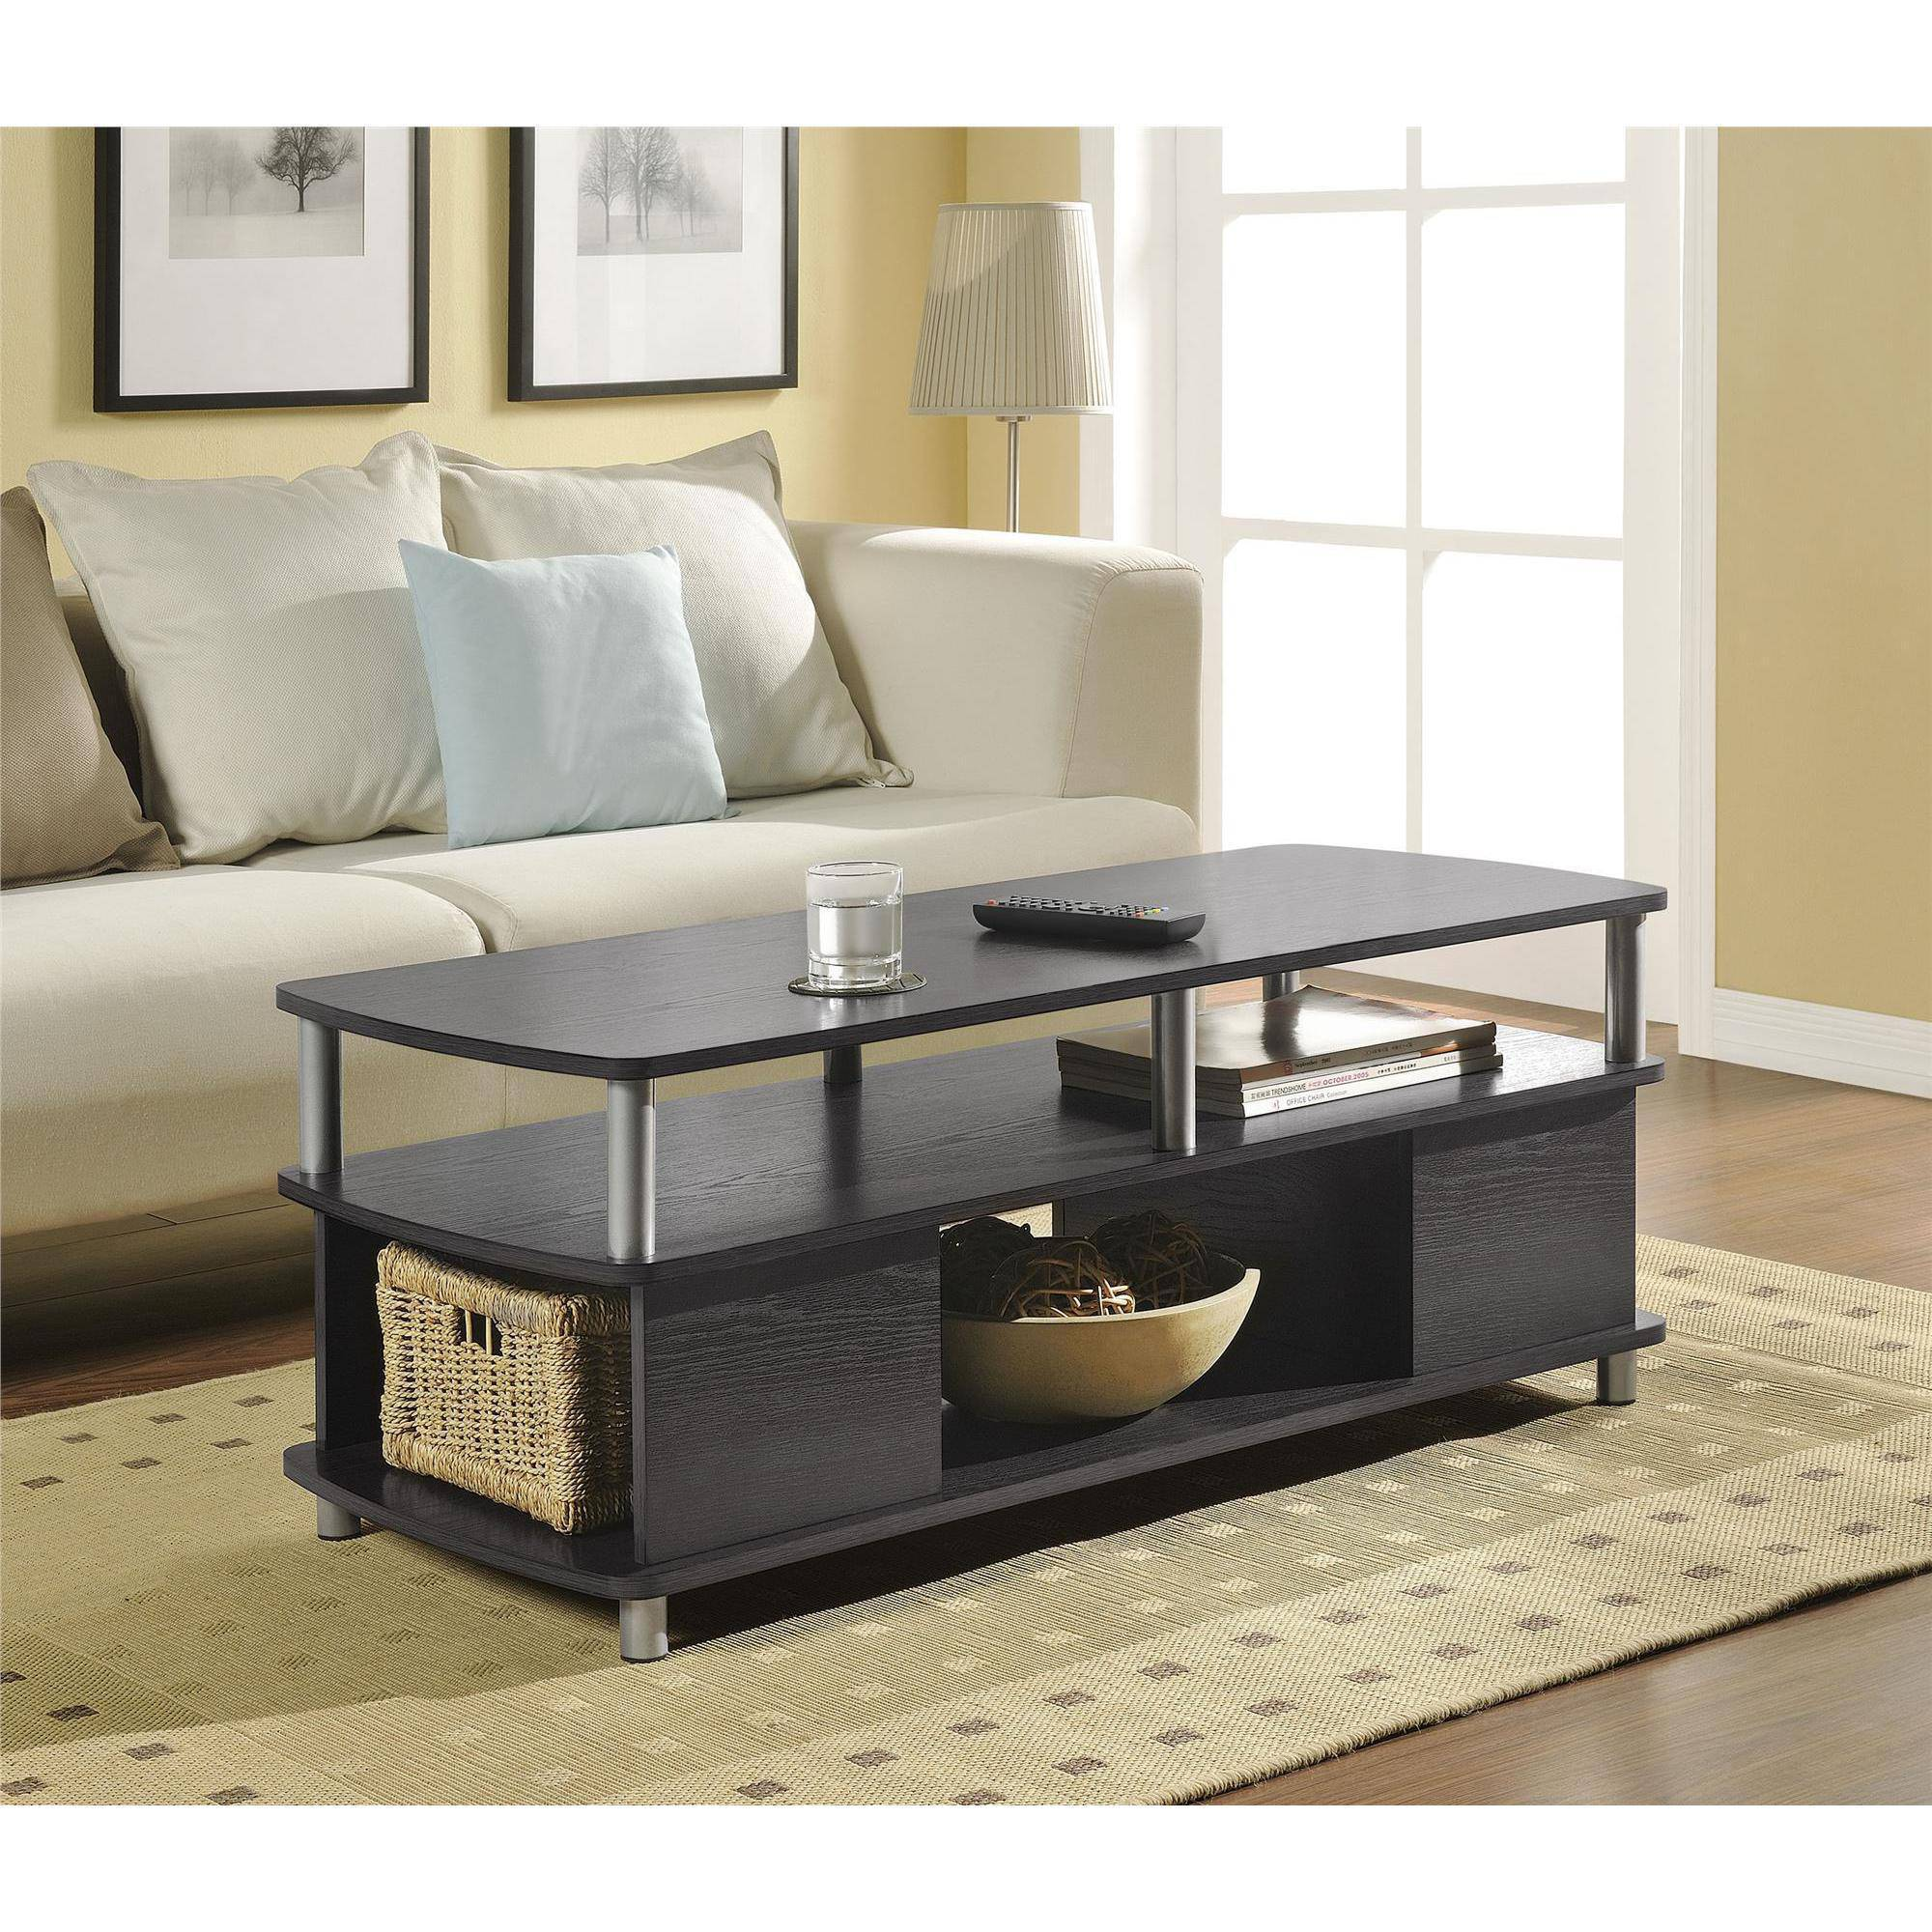 Carson 3 Piece Living Room Set, Multiple Finishes. Walmart #: 758LL00RCR9S.  Bundle Includes. Carson Coffee Table